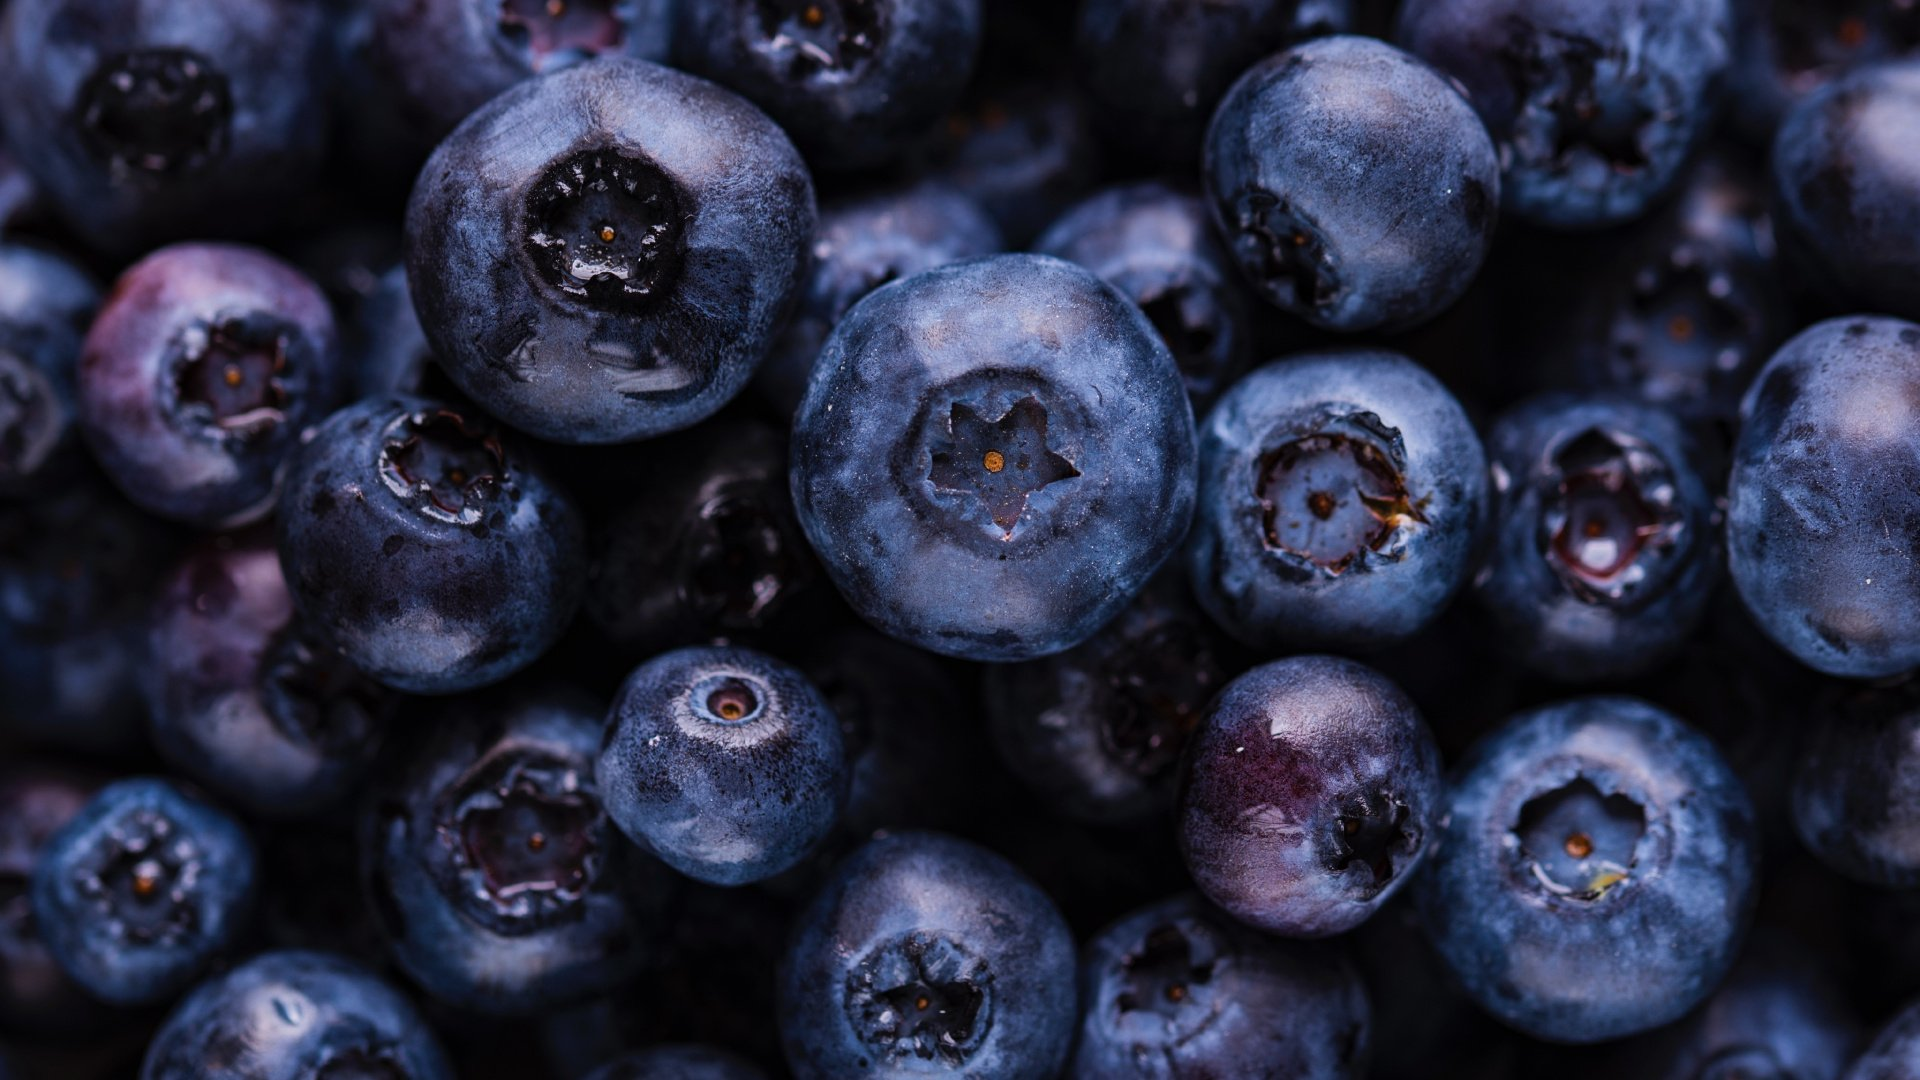 Blueberry Wallpaper Picture